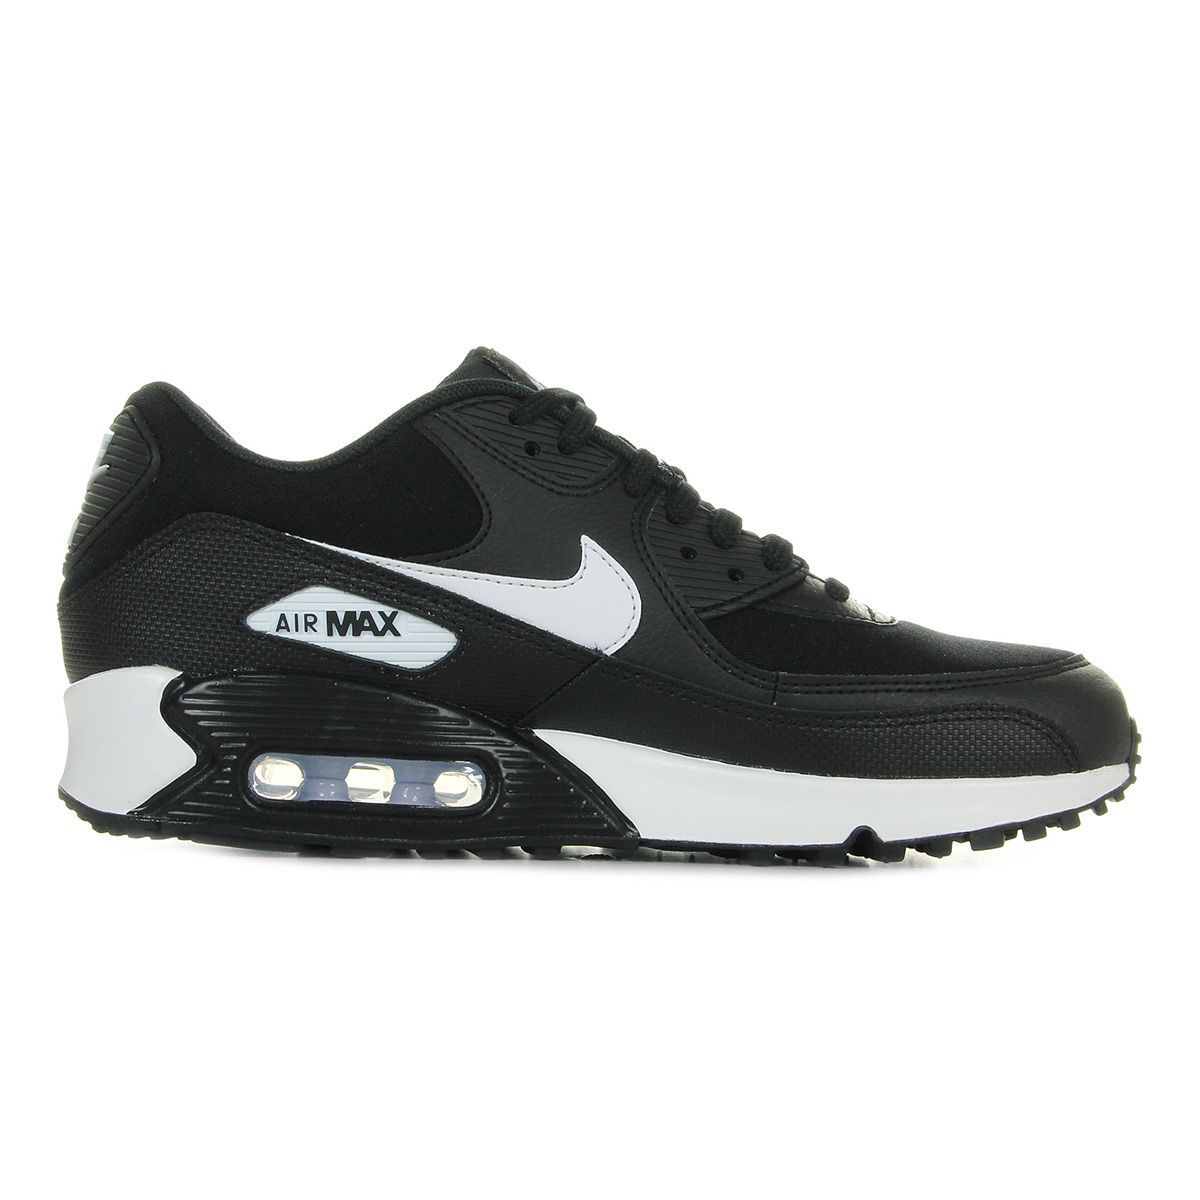 Basket Nike W Air Max 90 - Ref. 325213-047 - Taille : 37 1/2 ...